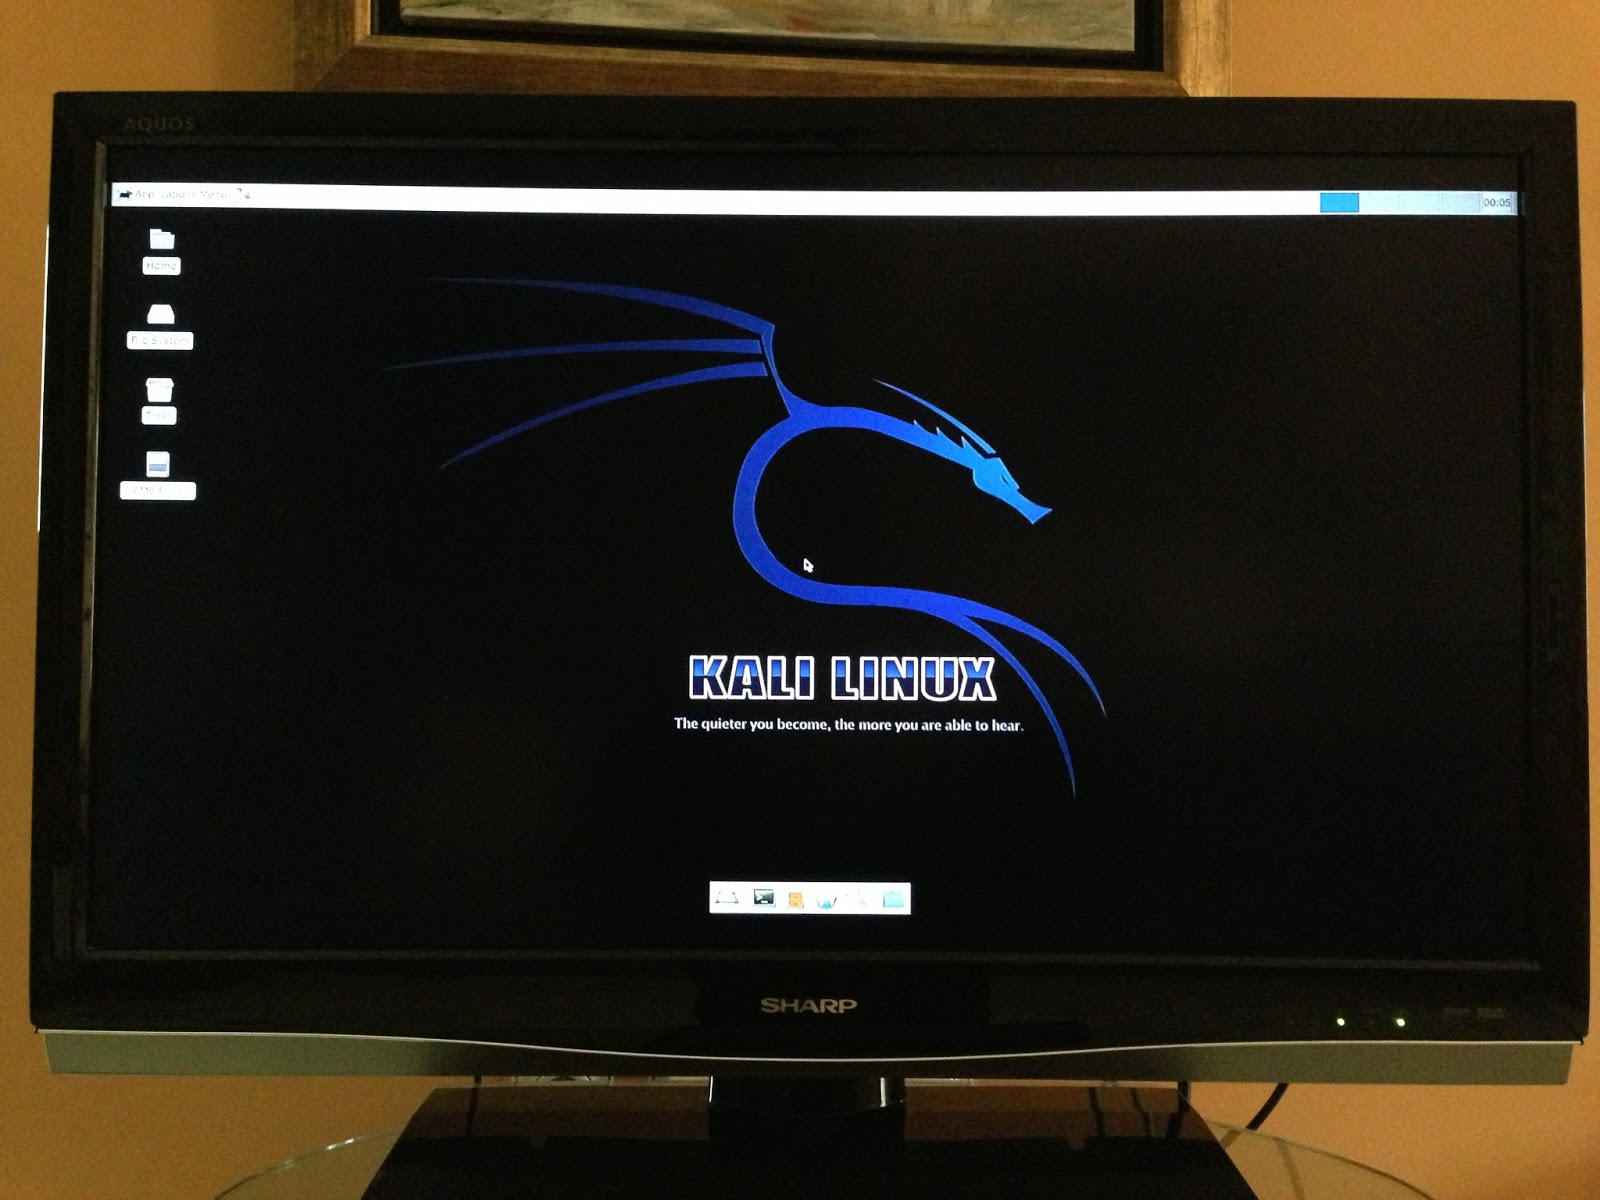 Download kali linux image for raspberry pi 3